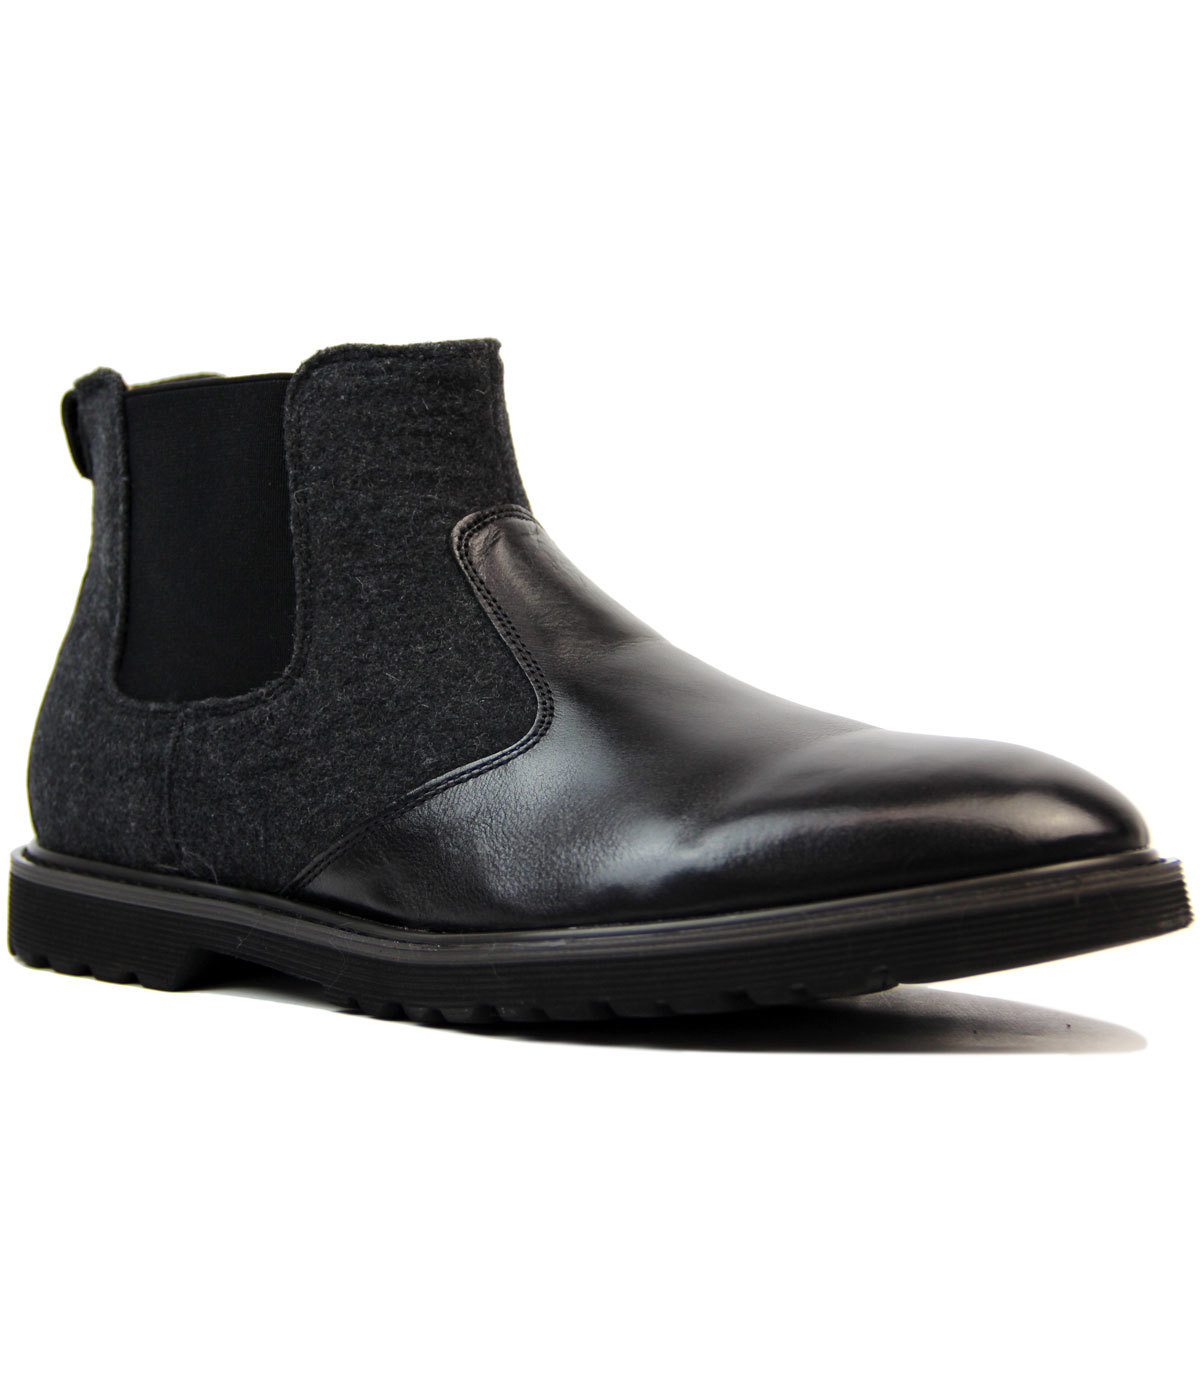 Laurie PETER WERTH Leather & Melton Chelsea Boots